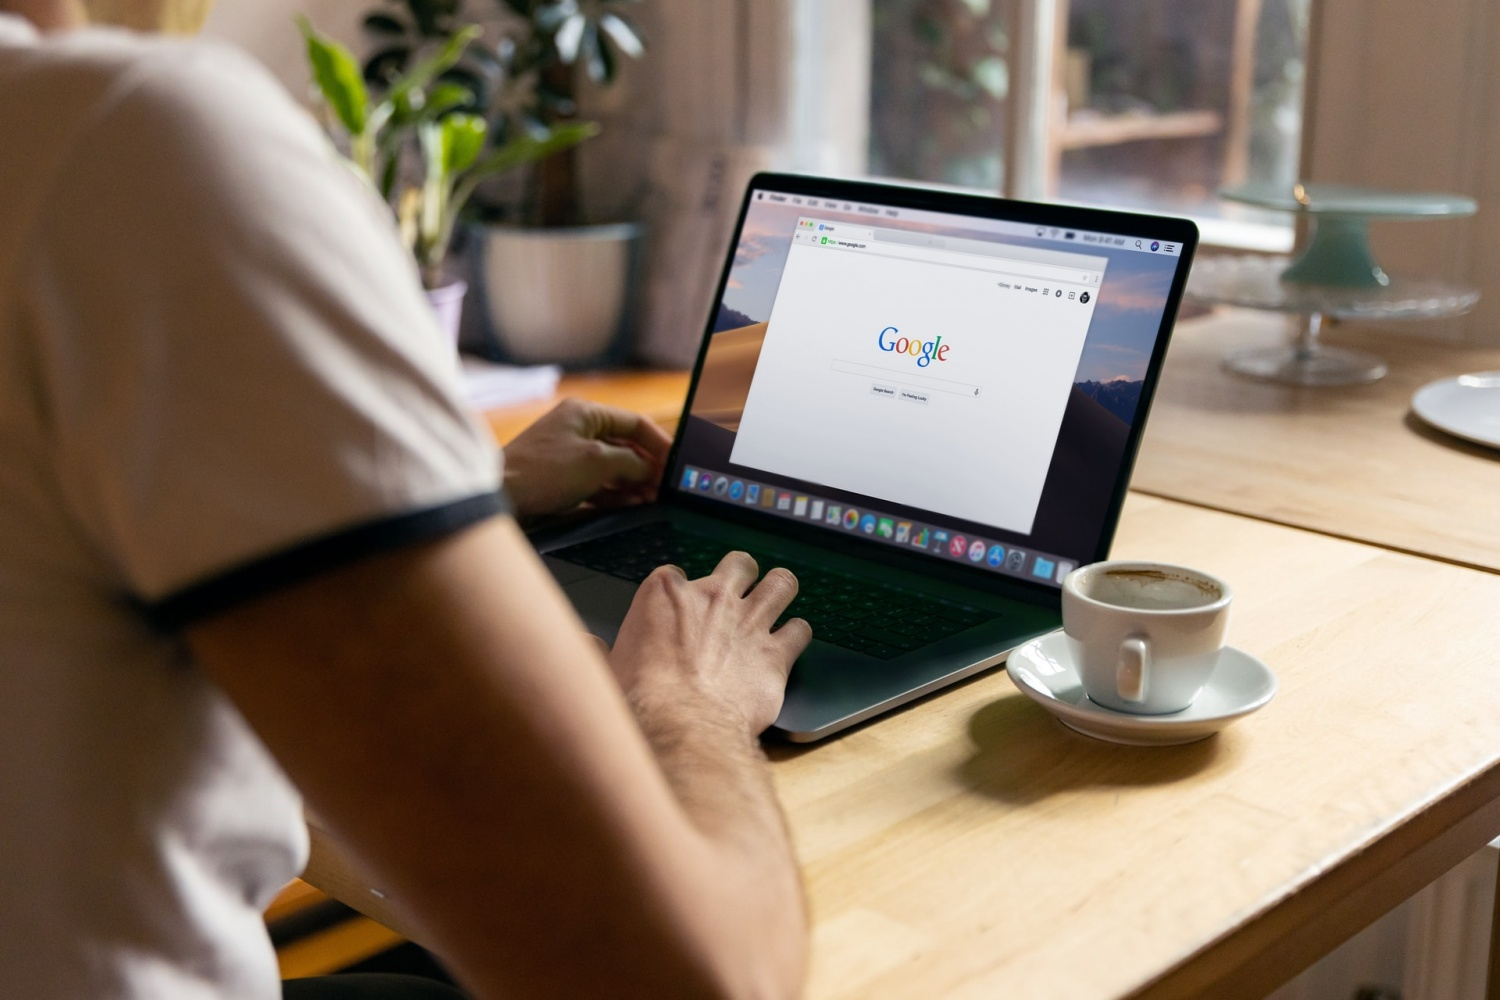 Chrome Flags Is Google's Best Open Secret: How to Activate, 10 Best Tools to Use